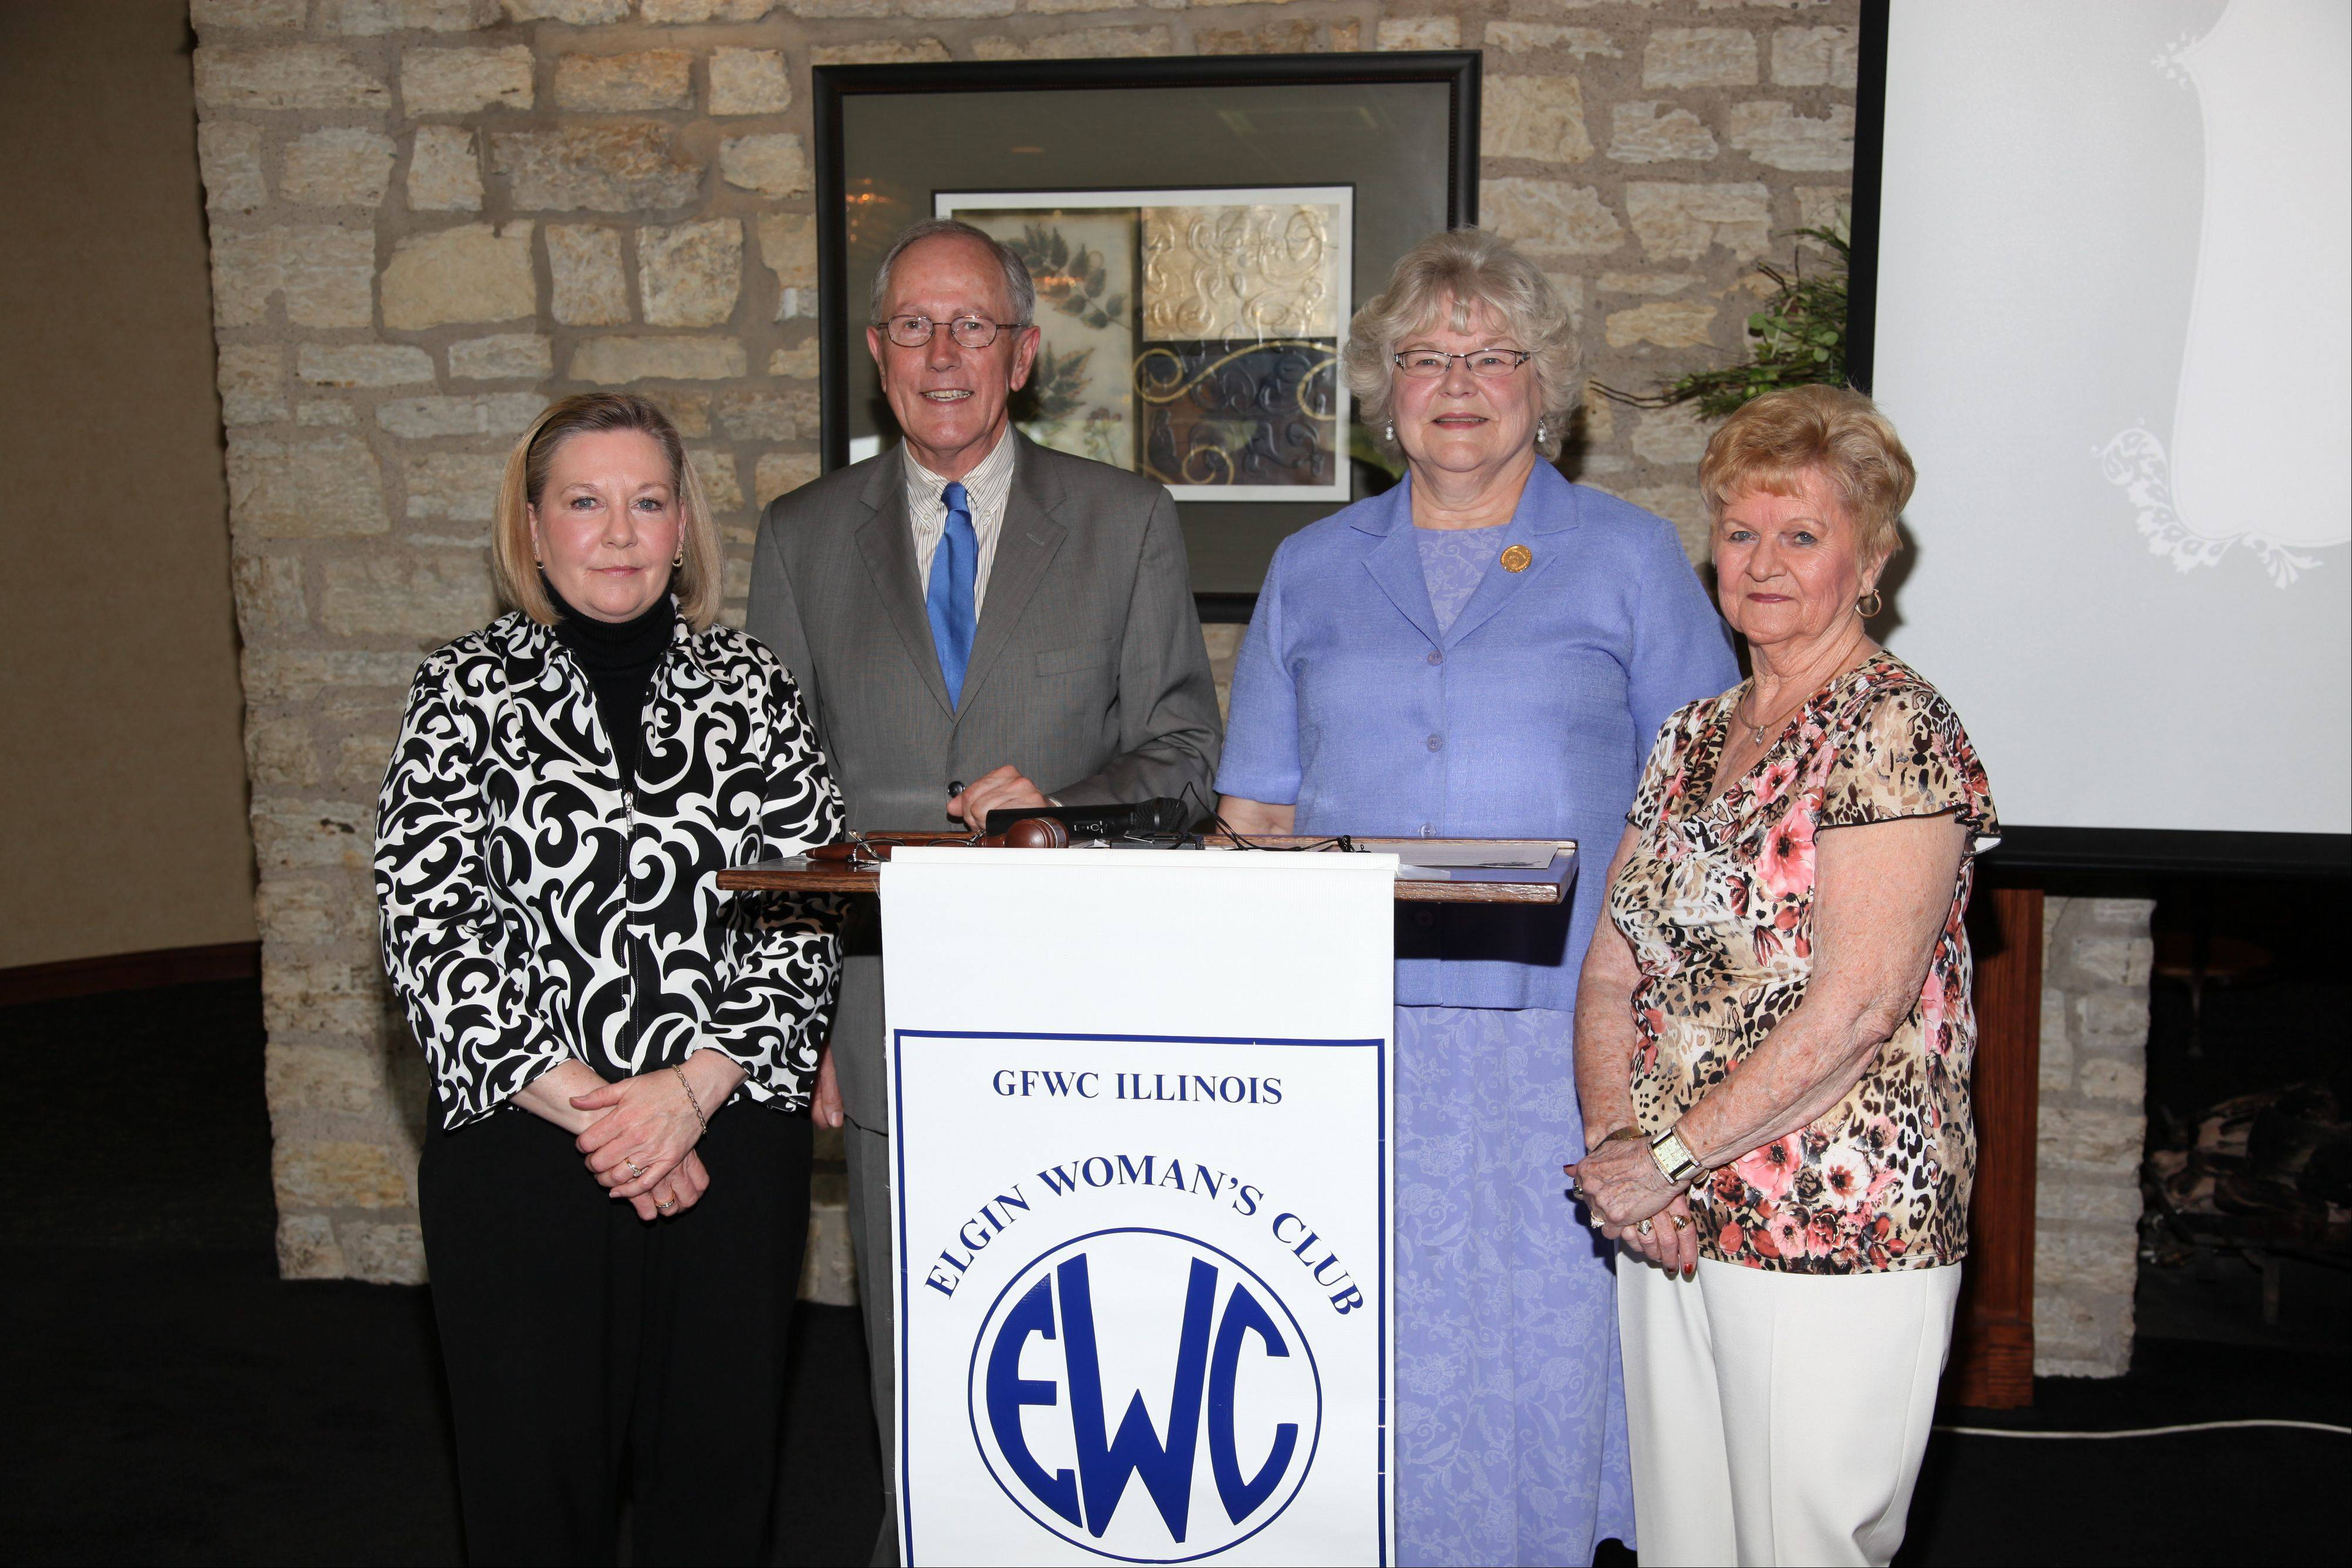 From left, Elgin Woman's Club President Linda Fagan poses with Dr. Ian Jones, vice president of clinical performance at Sherman Hospital; Pat Heitman, Illinois president of the General Federation of Women's Clubs; and Georgia Ross, past president of the Elgin Woman's Club, during a recent anniversary function.